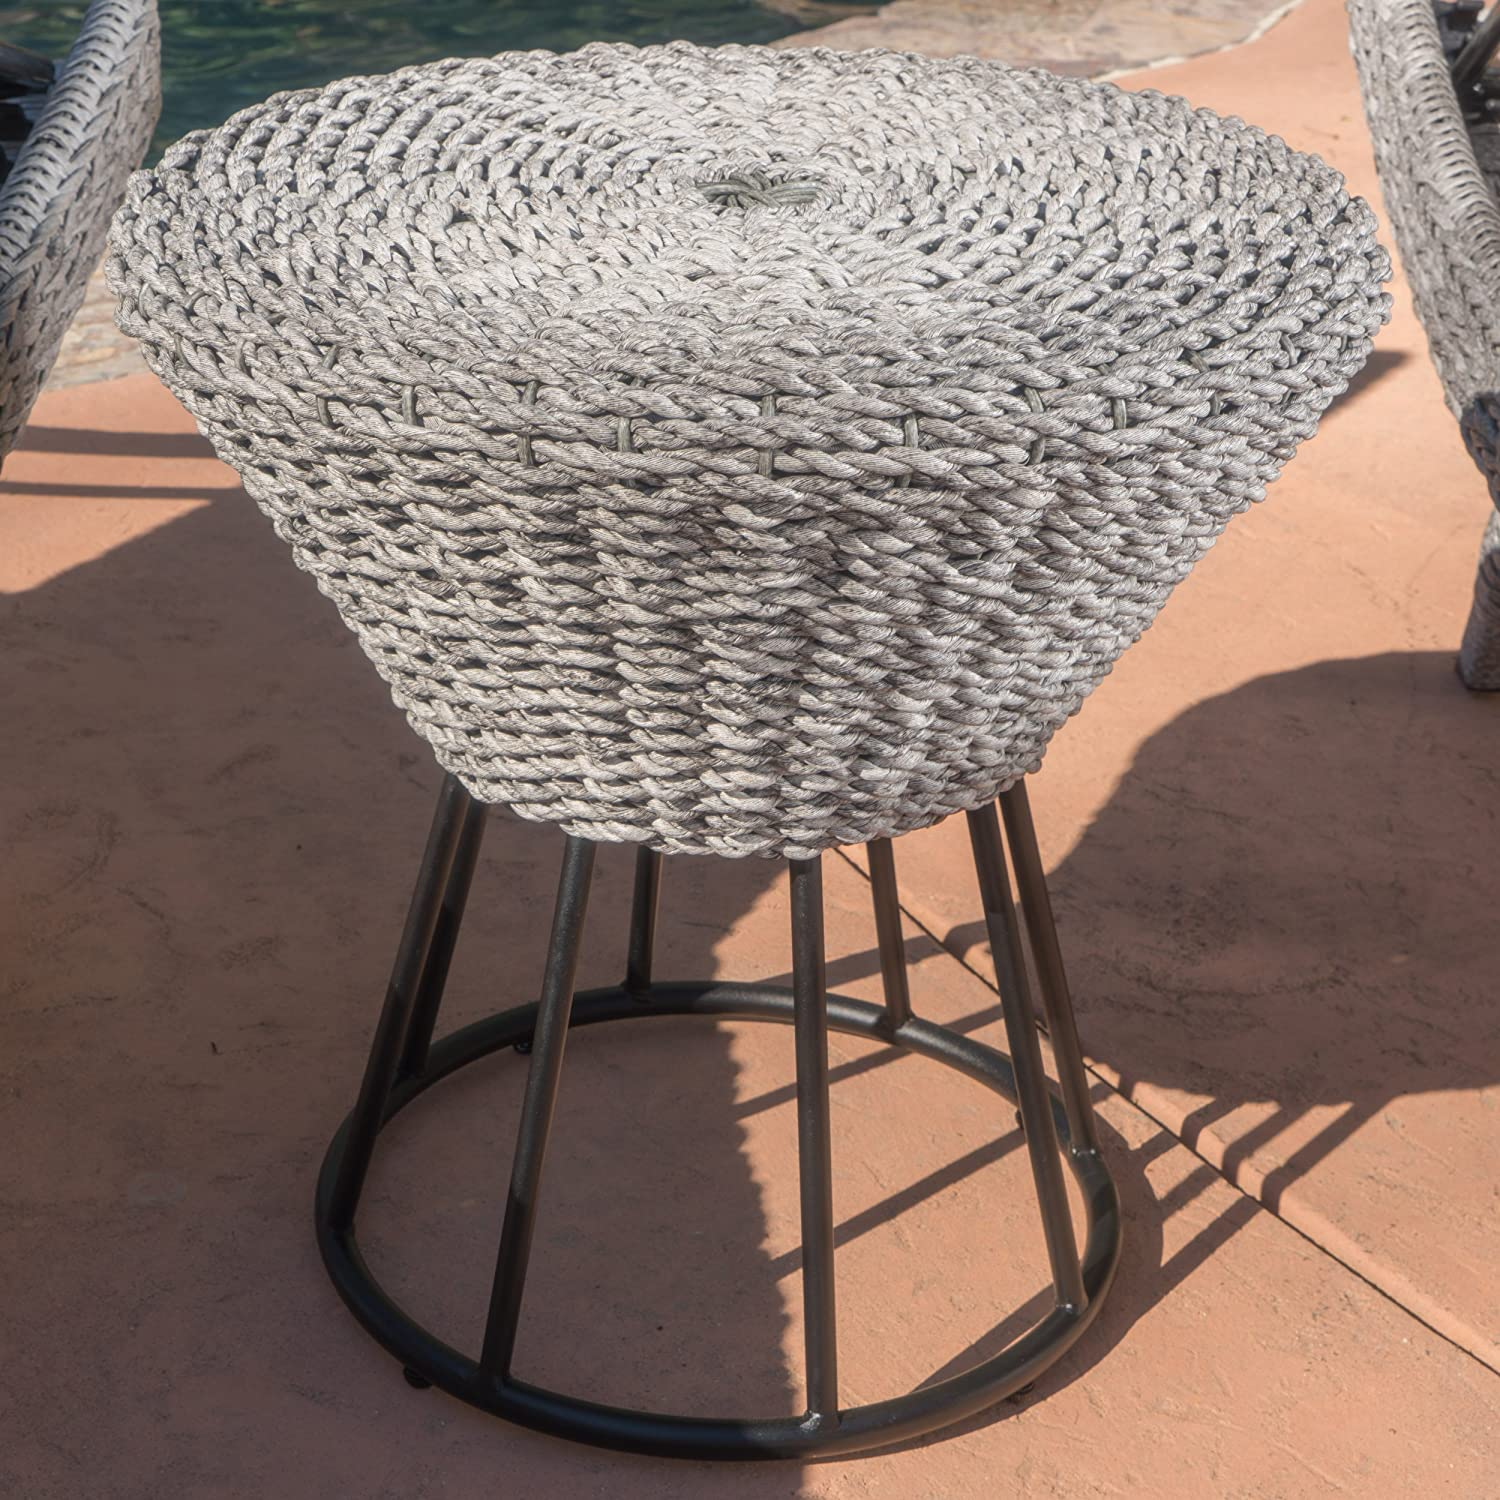 Christopher Knight Home Crete Outdoor Wicker Side Table, Grey